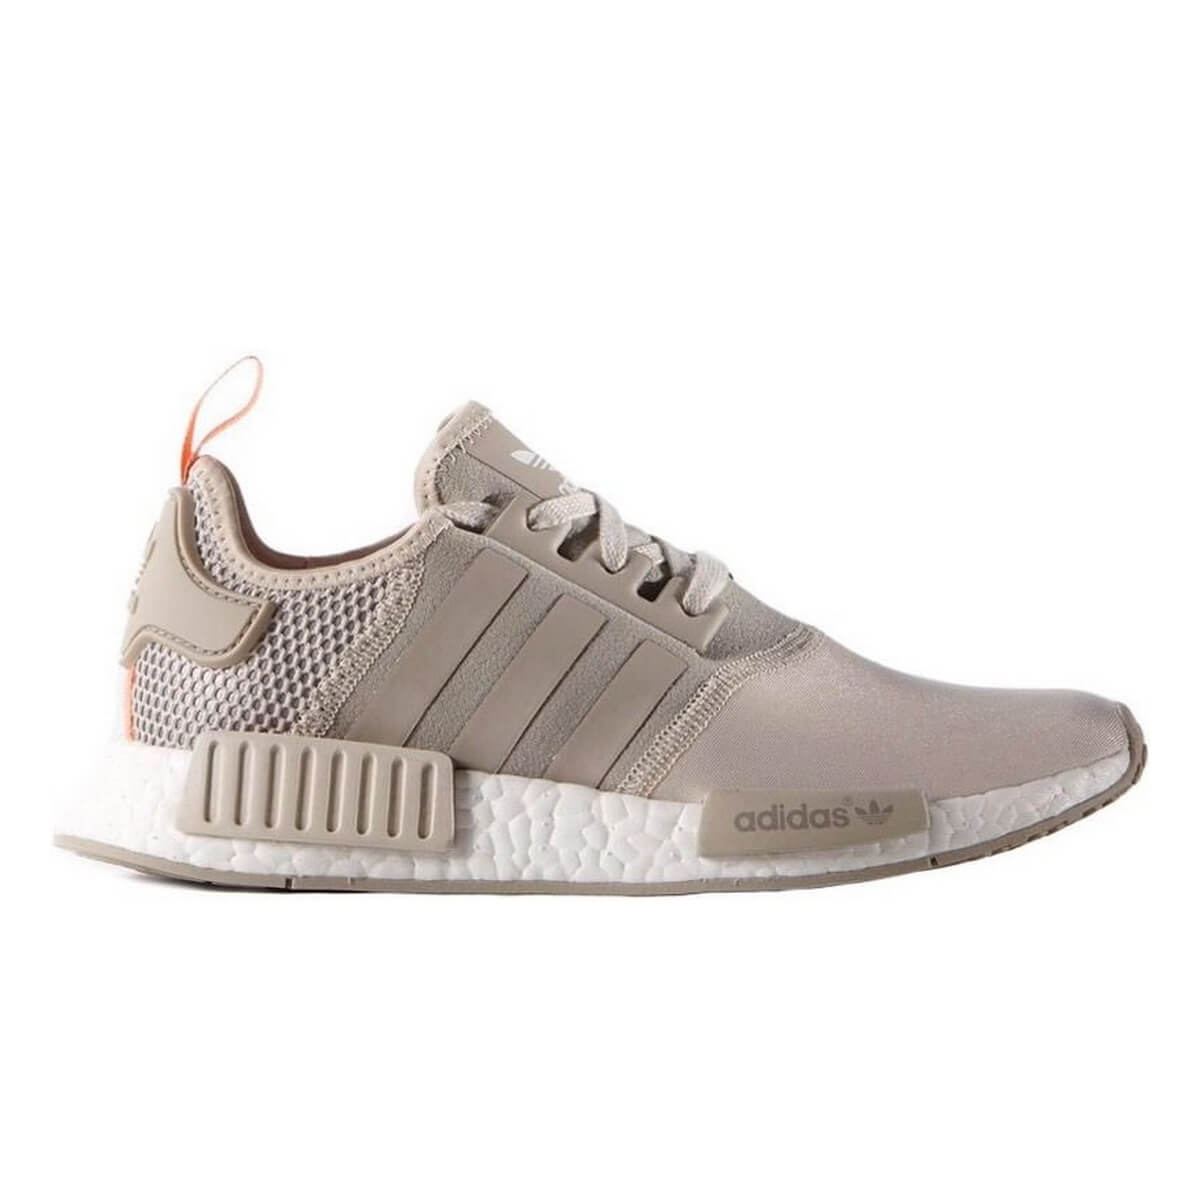 27ebb761e0abd Adidas NMD R1 W Clear Brown Tan Beige S75233